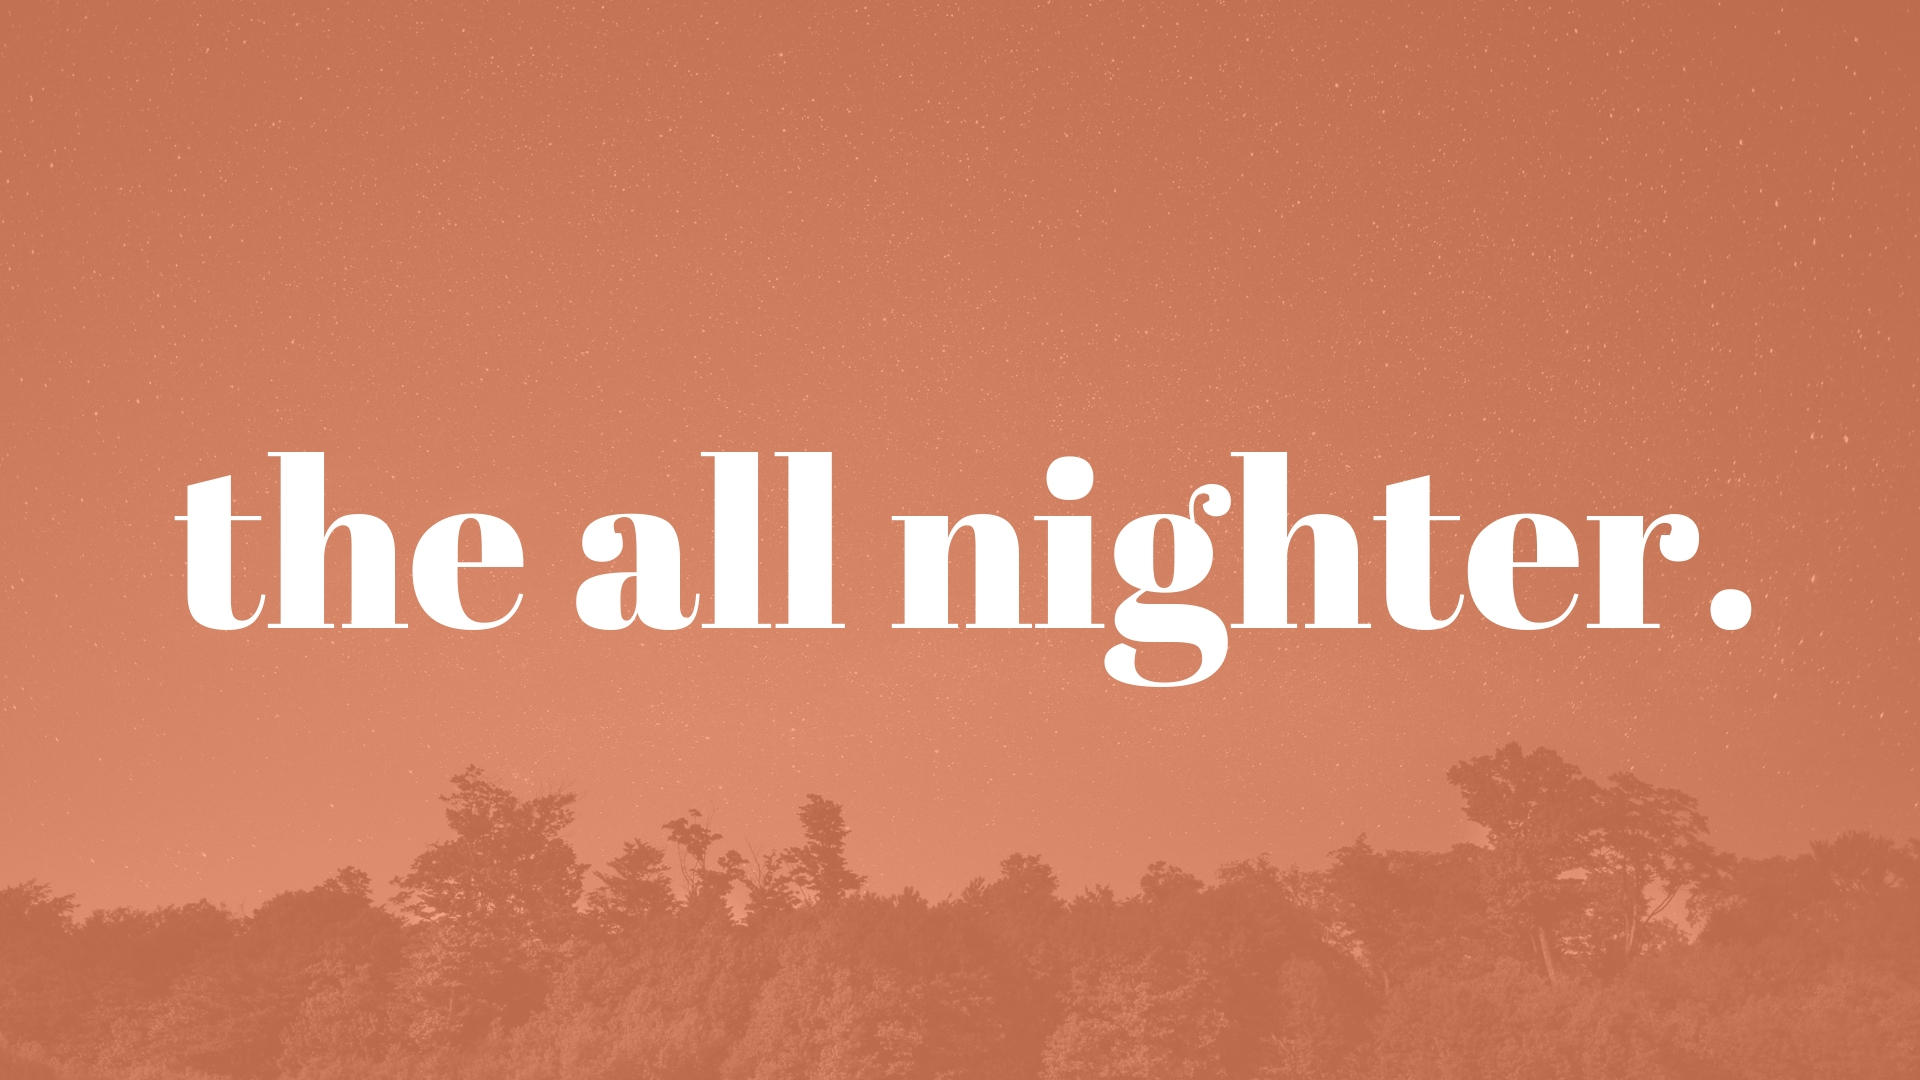 The_All_Nighter image